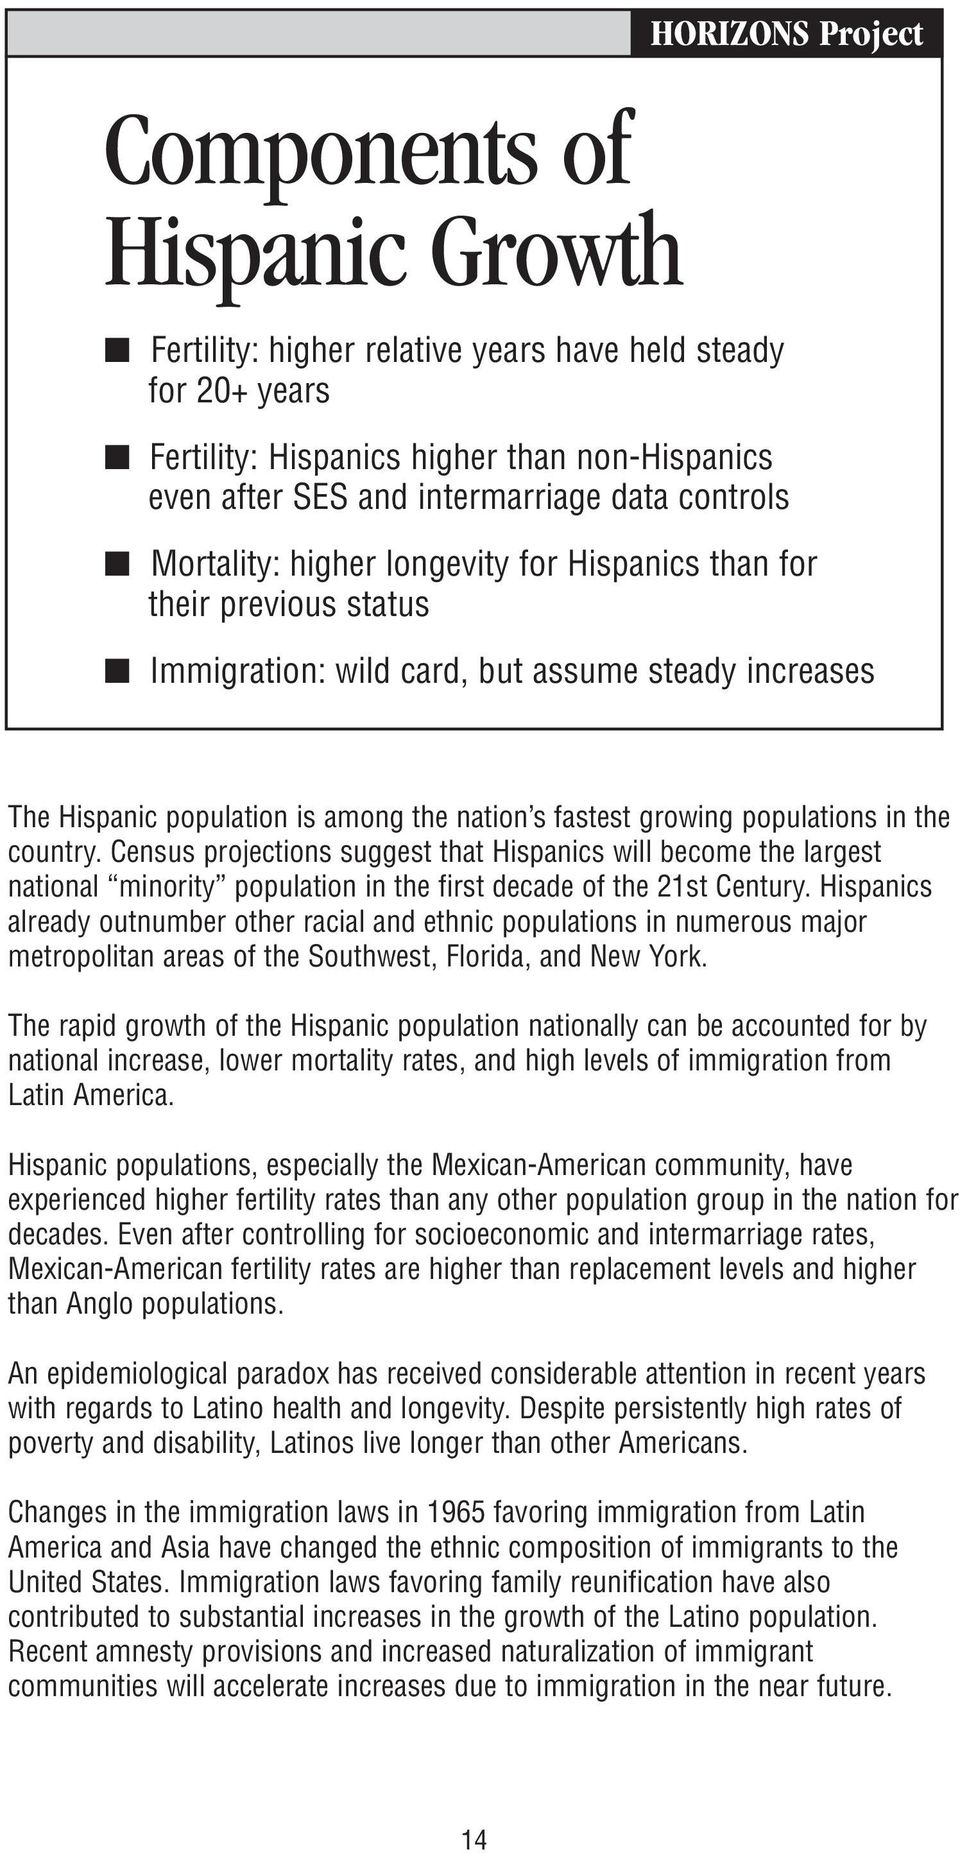 country. Census projections suggest that Hispanics will become the largest national minority population in the first decade of the 21st Century.